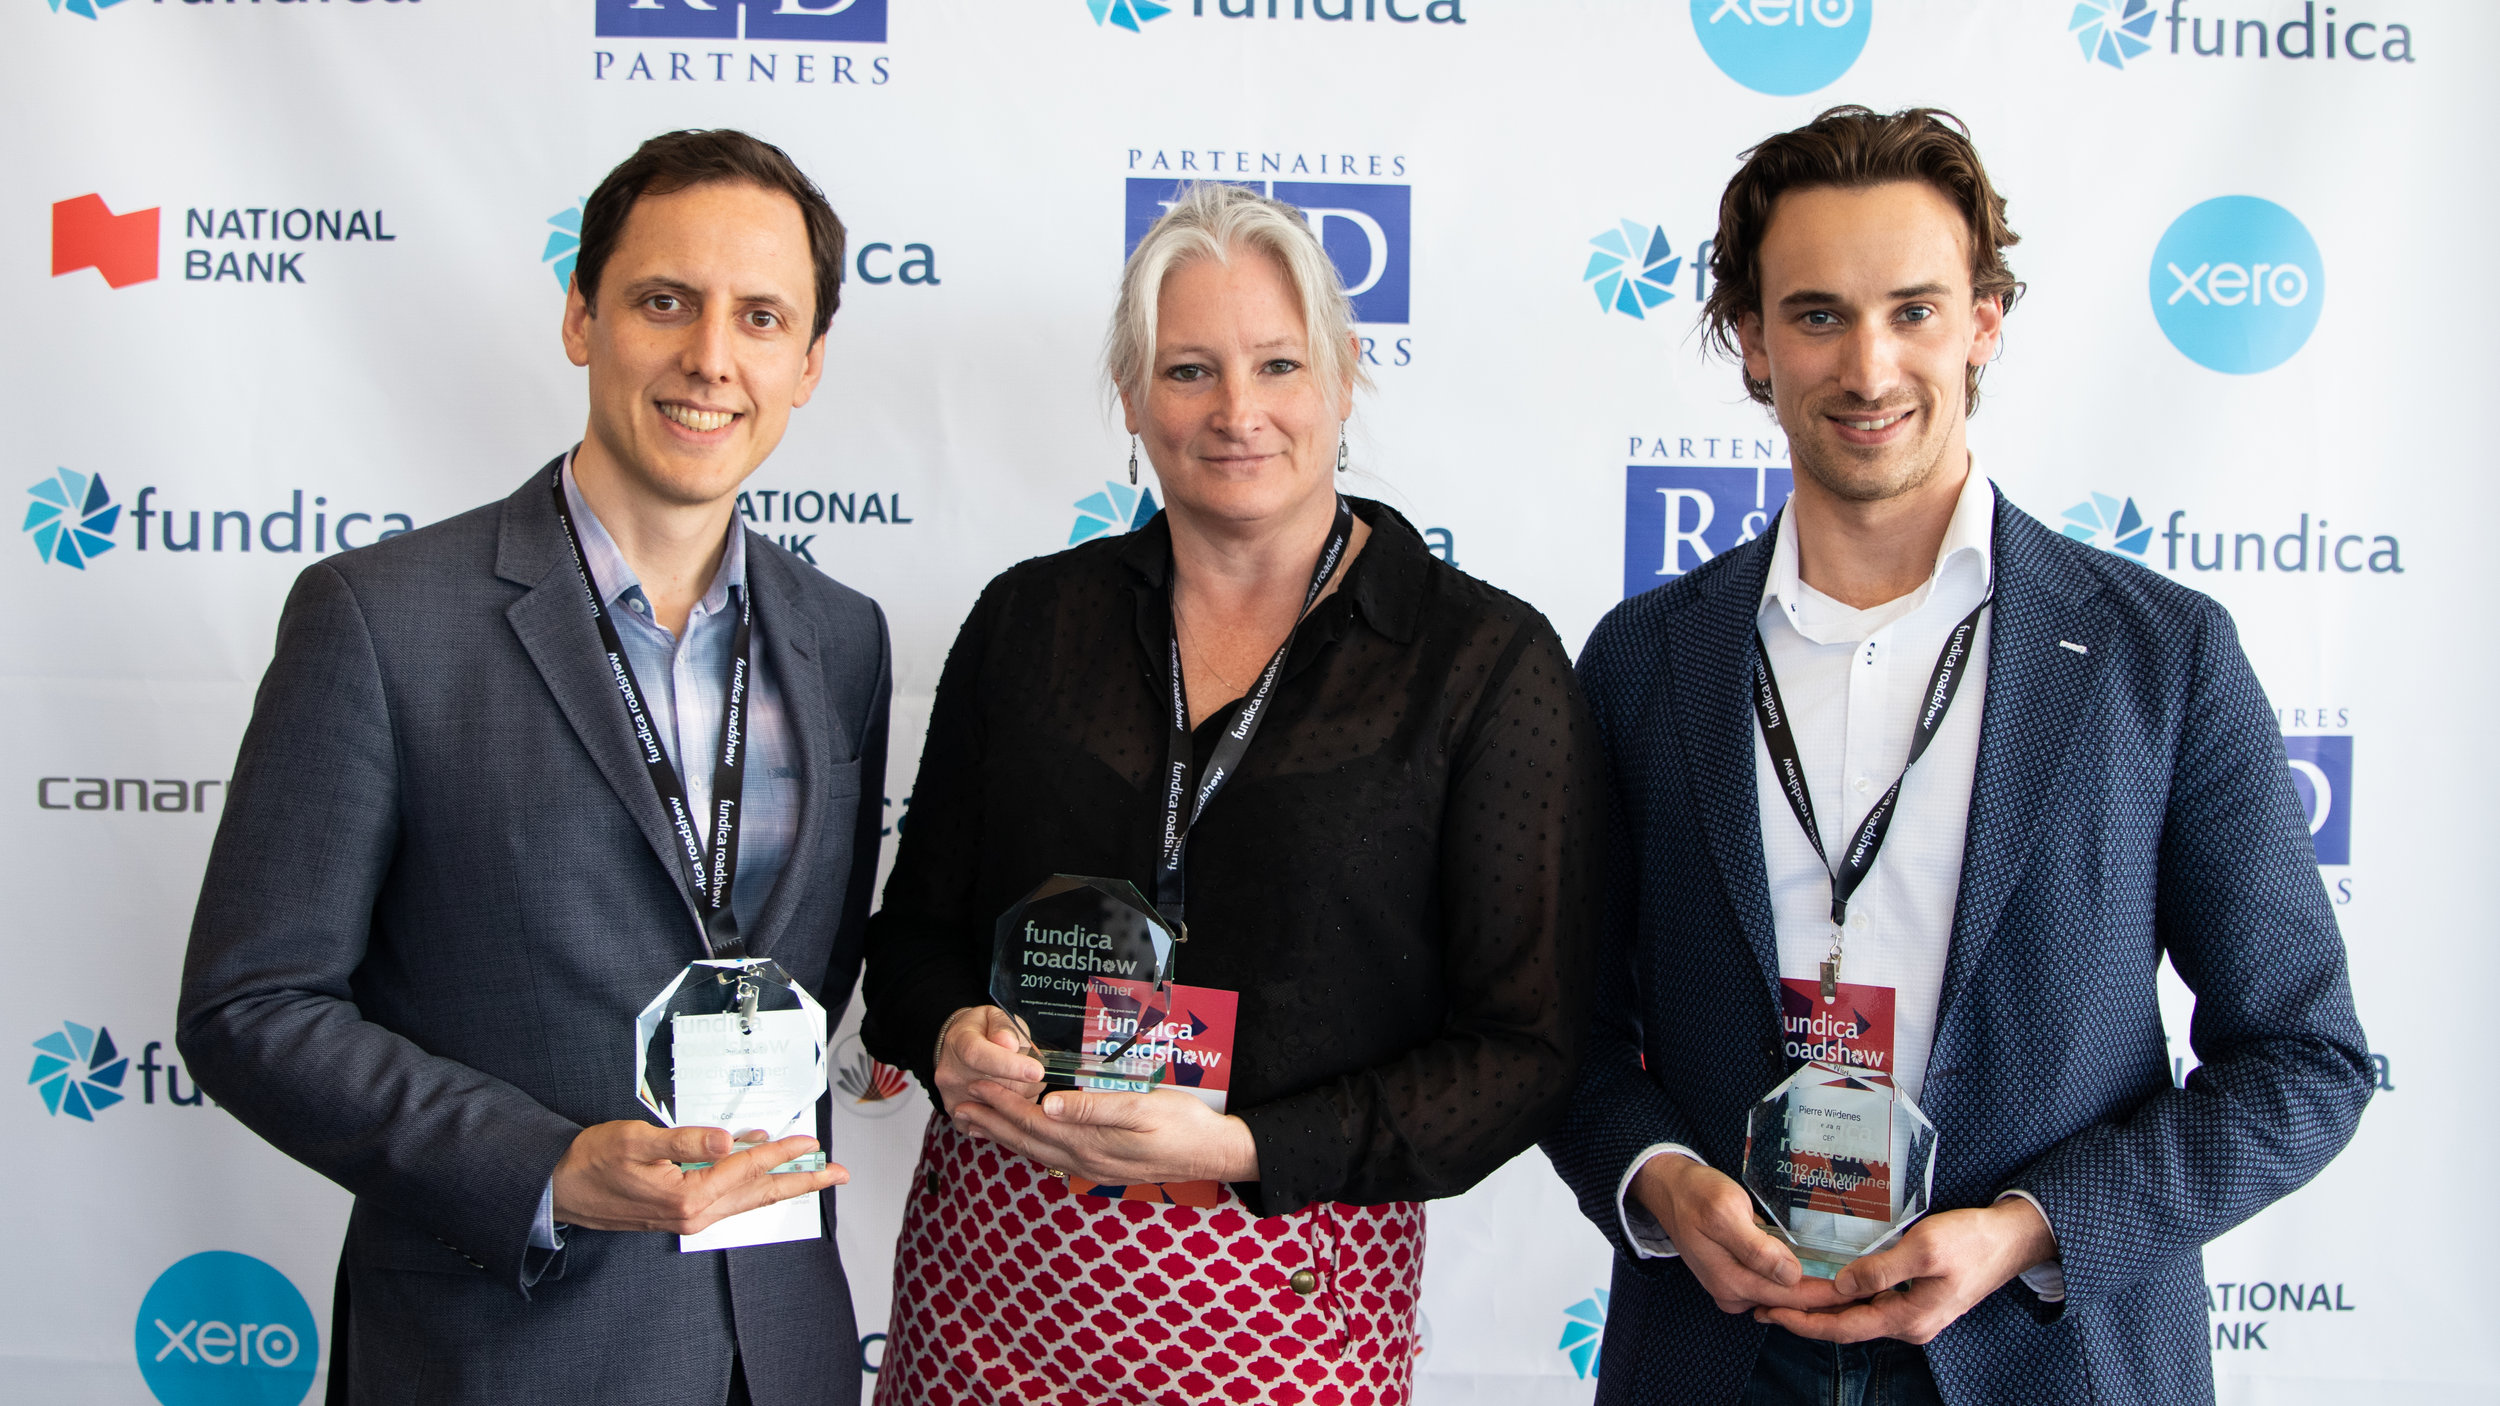 The Vancouver winners from left to right: Ryan Smith, CEO of Ftsy, Margary Moore, CEO of Gasperecz Global, and Pierre Wijdenes, CEO and Co-Founder of Neuraura.